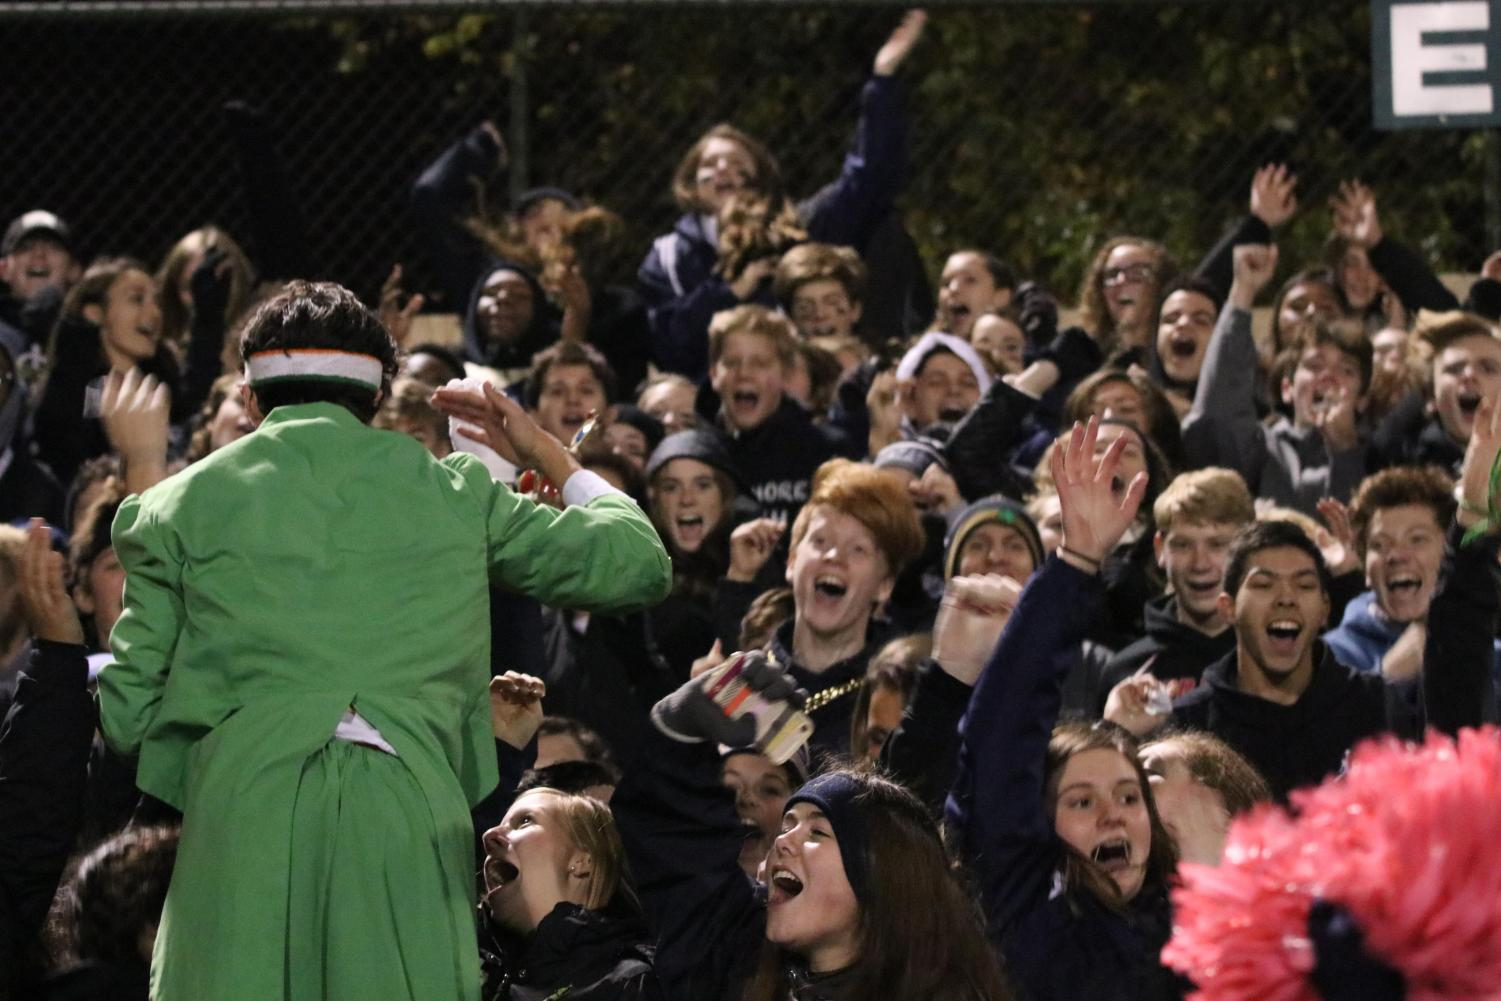 The student section at the Sectional opener at Tech will have the chance on Nov. 7 through Nov. 10 to buy tickets for the football Regional at Bloomington South.